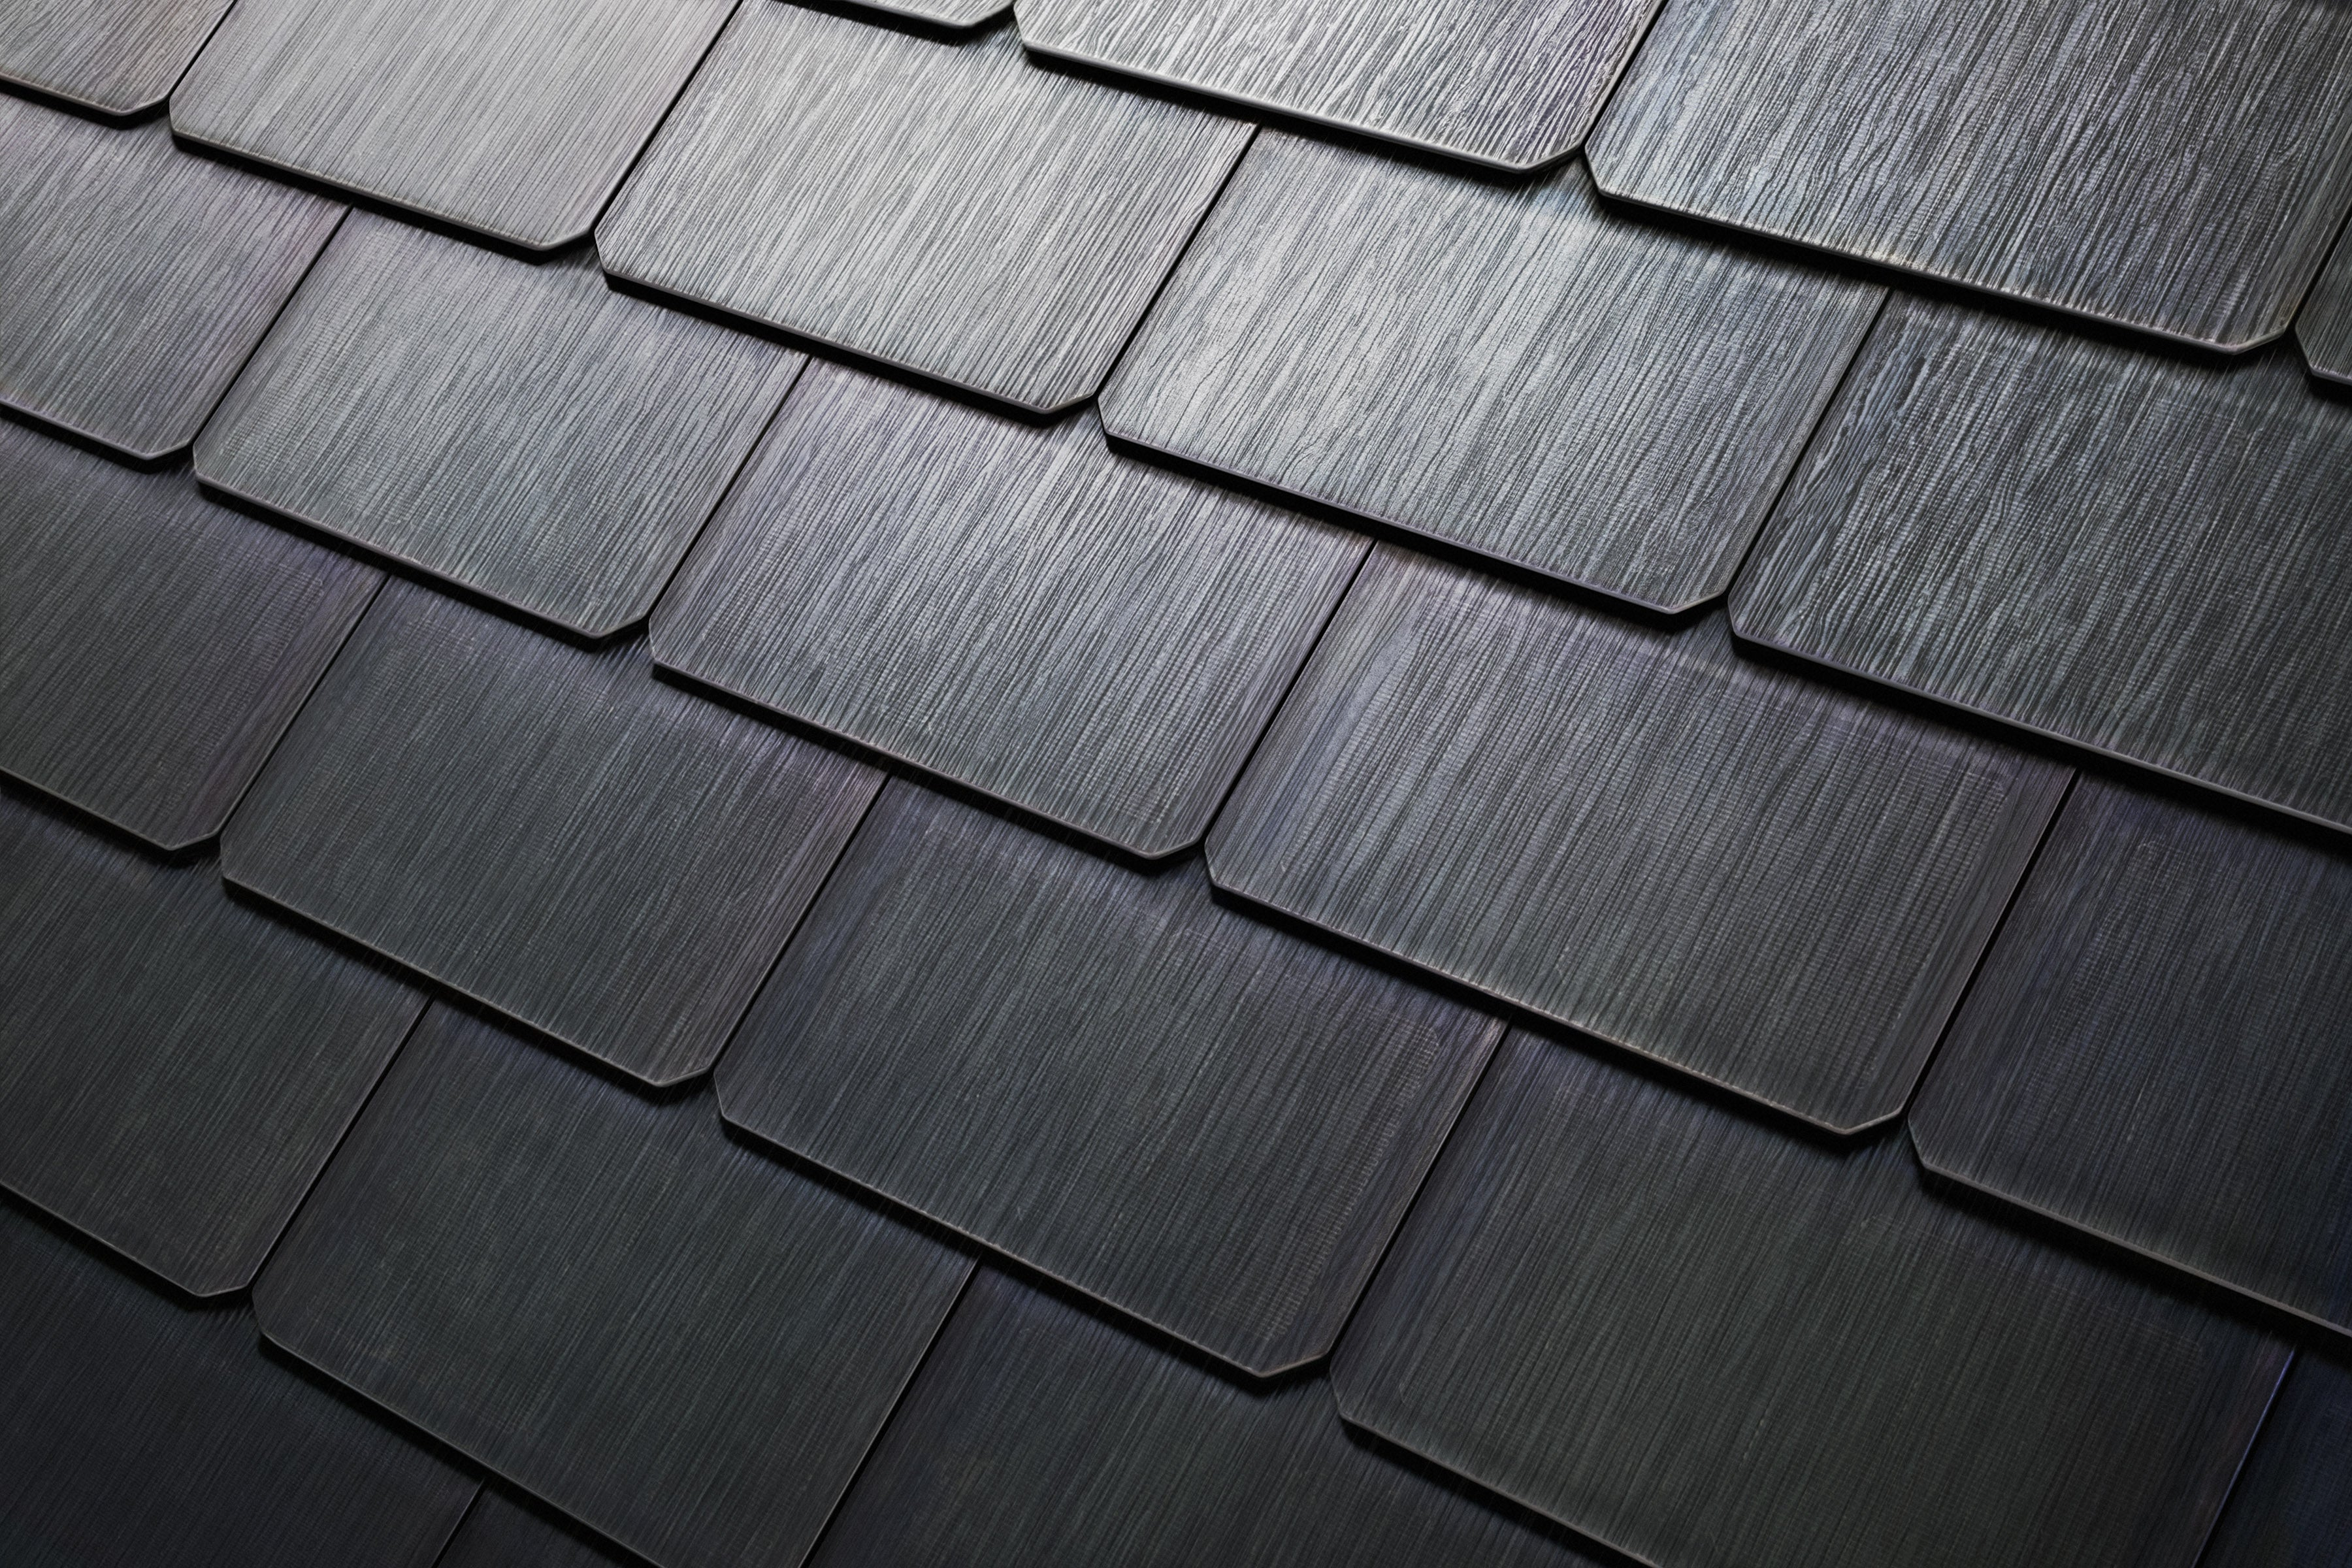 Tesla Inc Demand Is Quot Strong Quot For Solar Tiles The